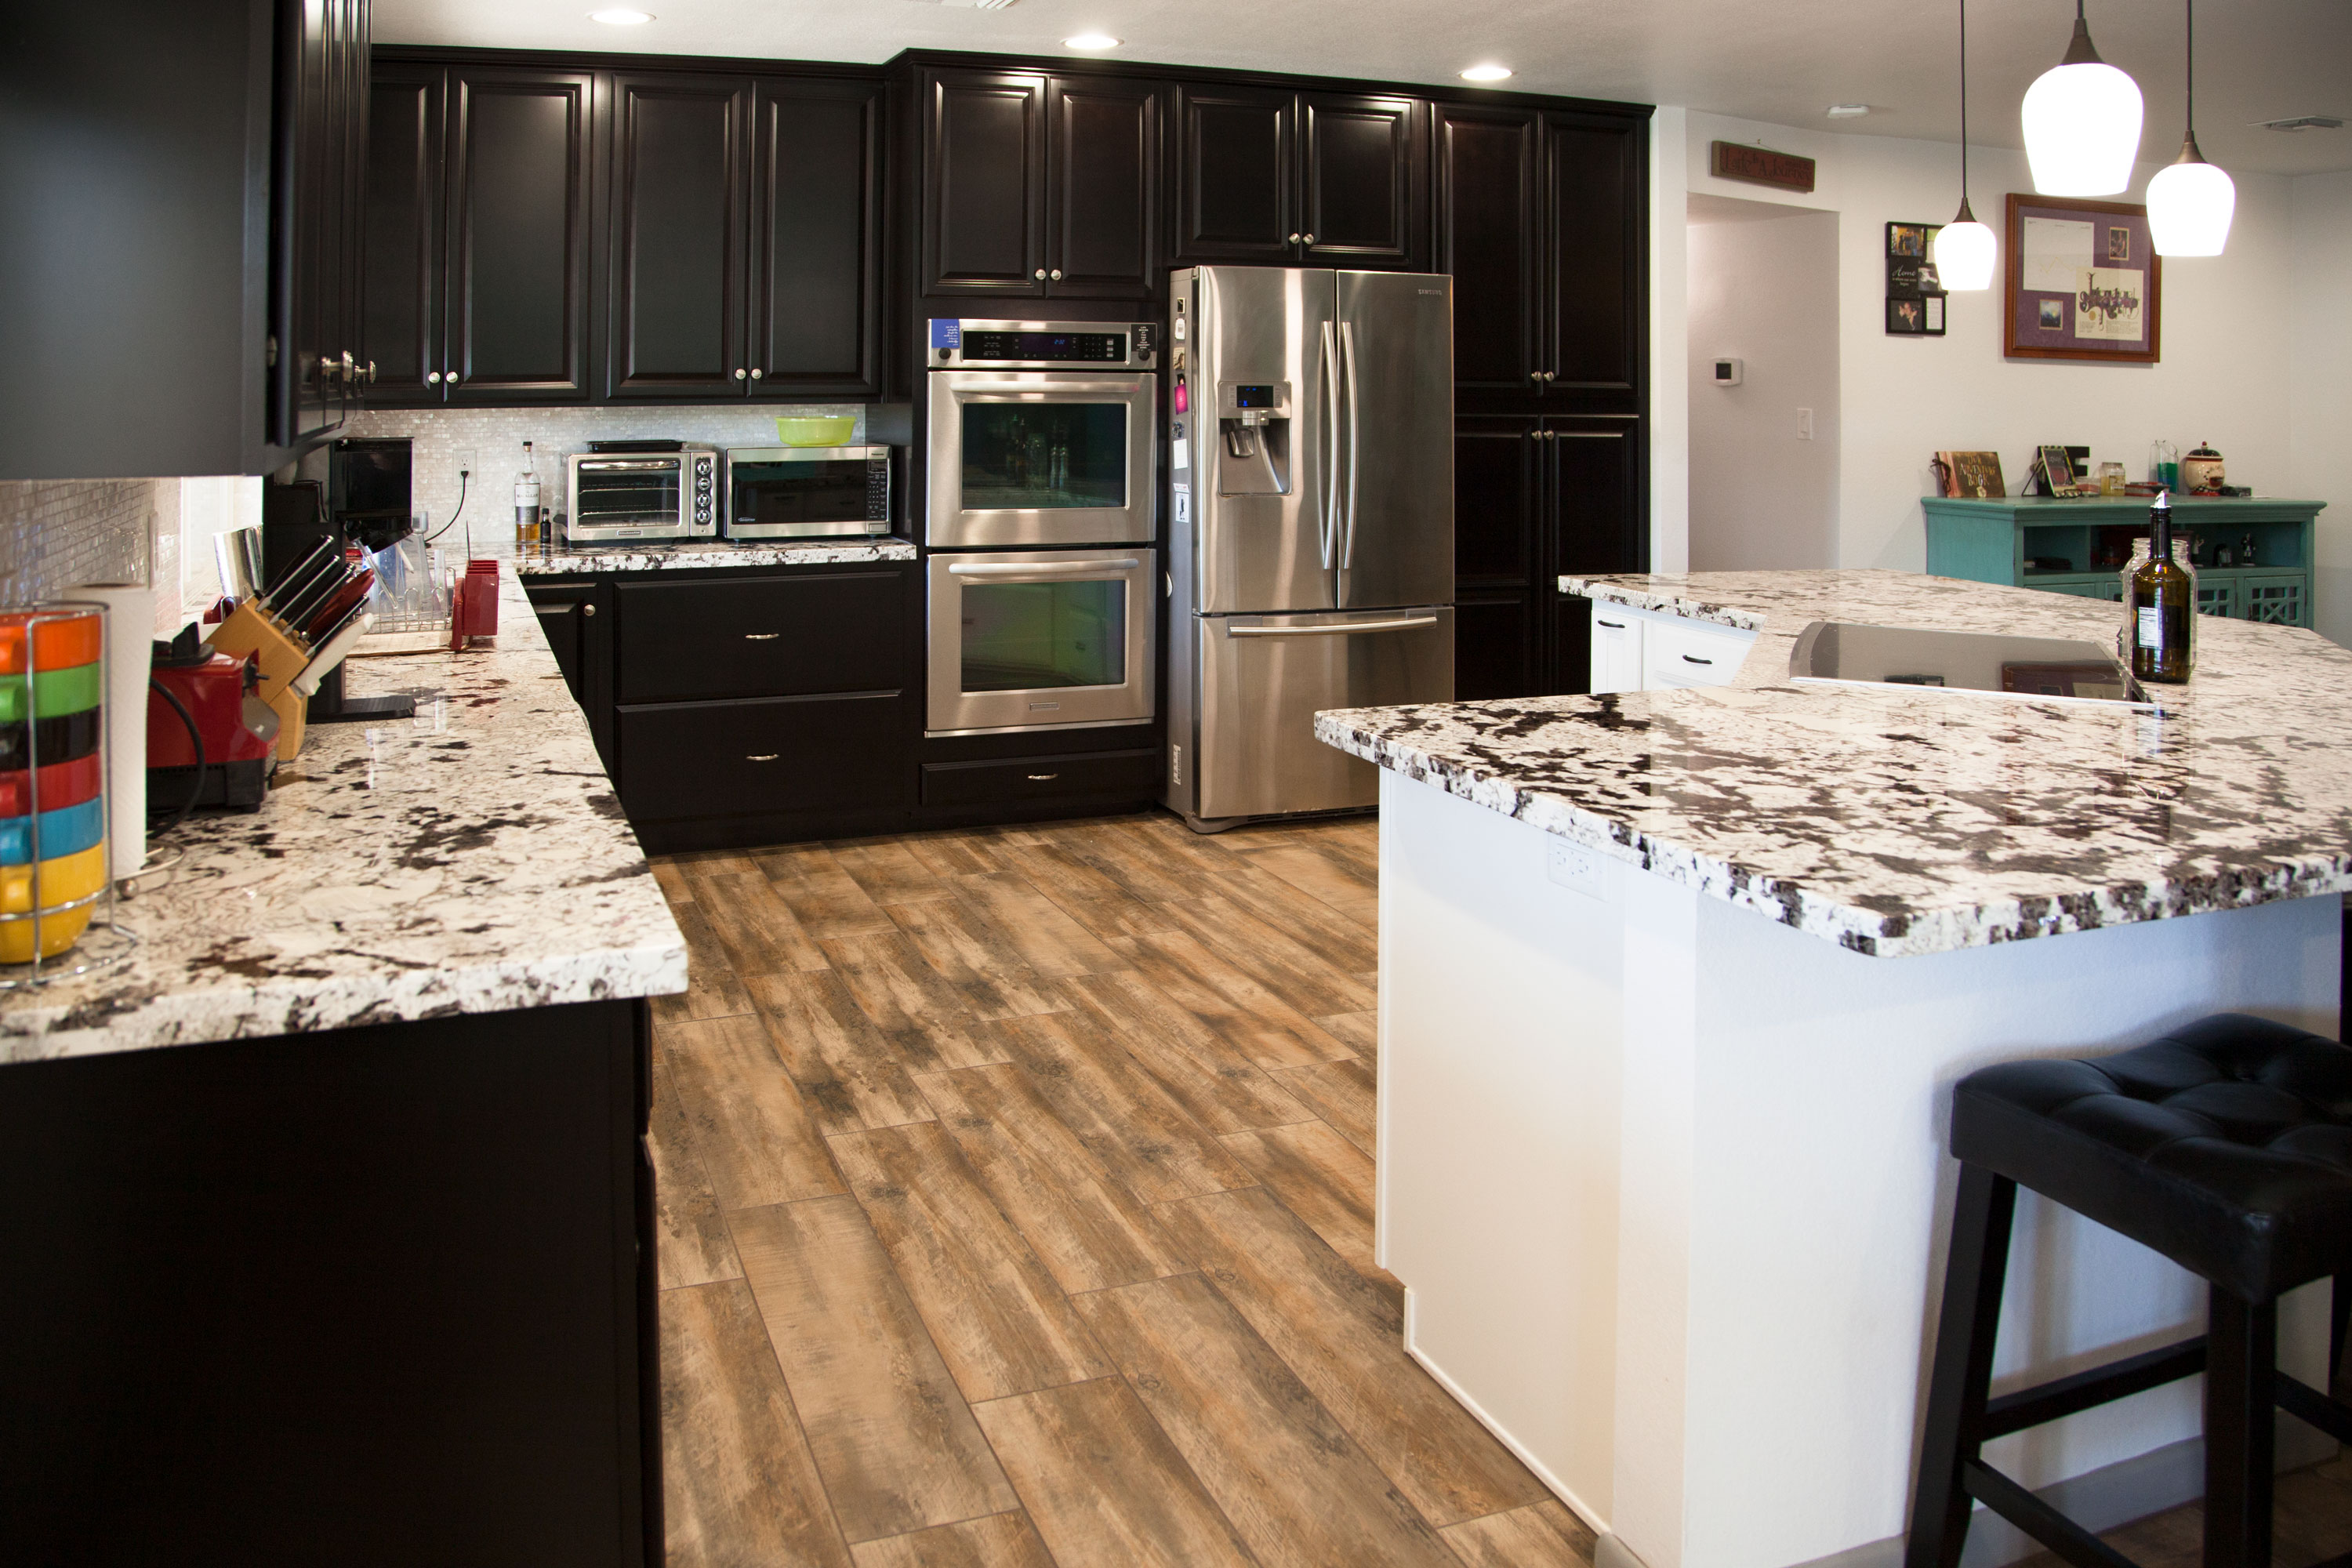 trends in kitchen flooring walmart rugs 2019 20 43 ideas for the